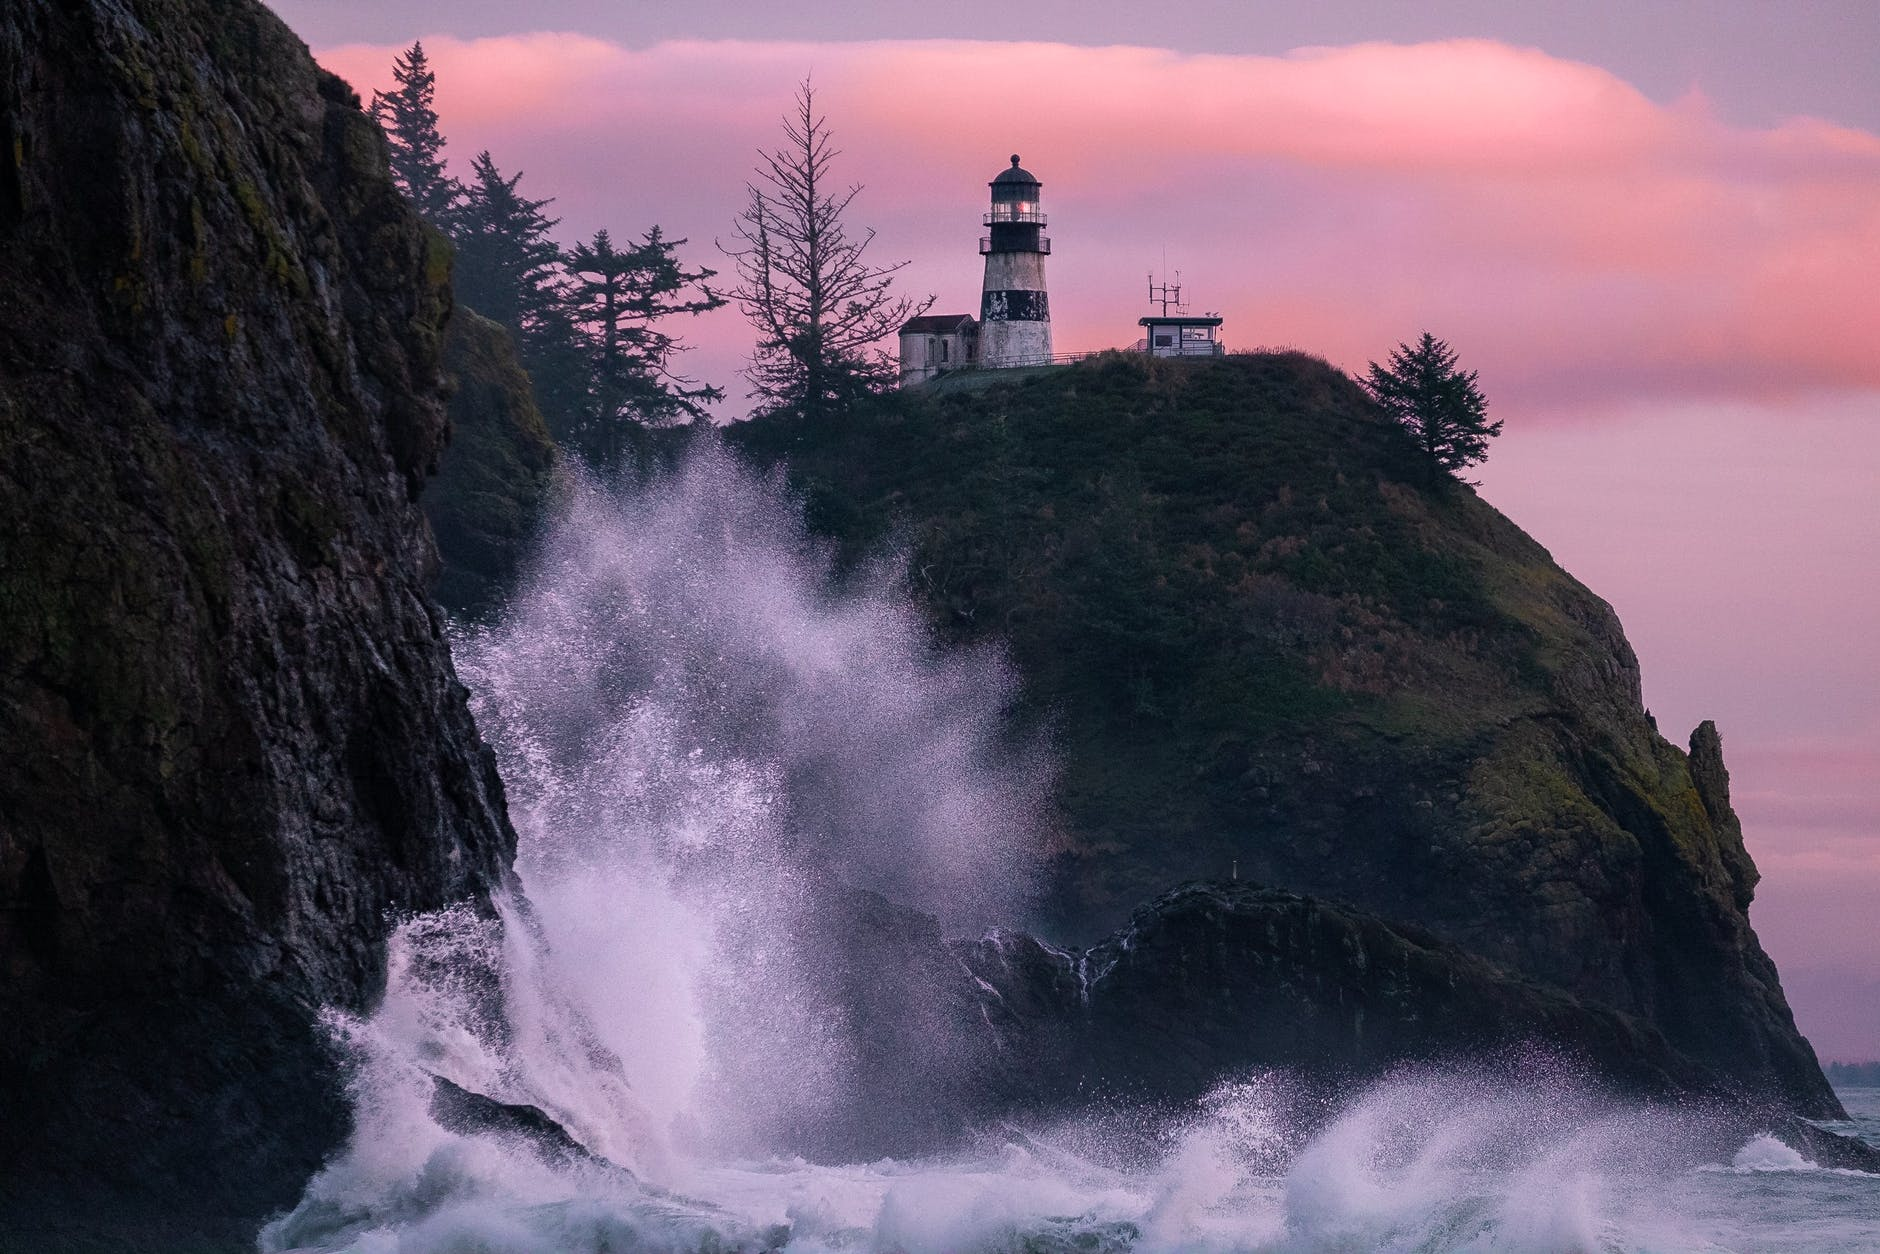 photo of a lighthouse near body of water